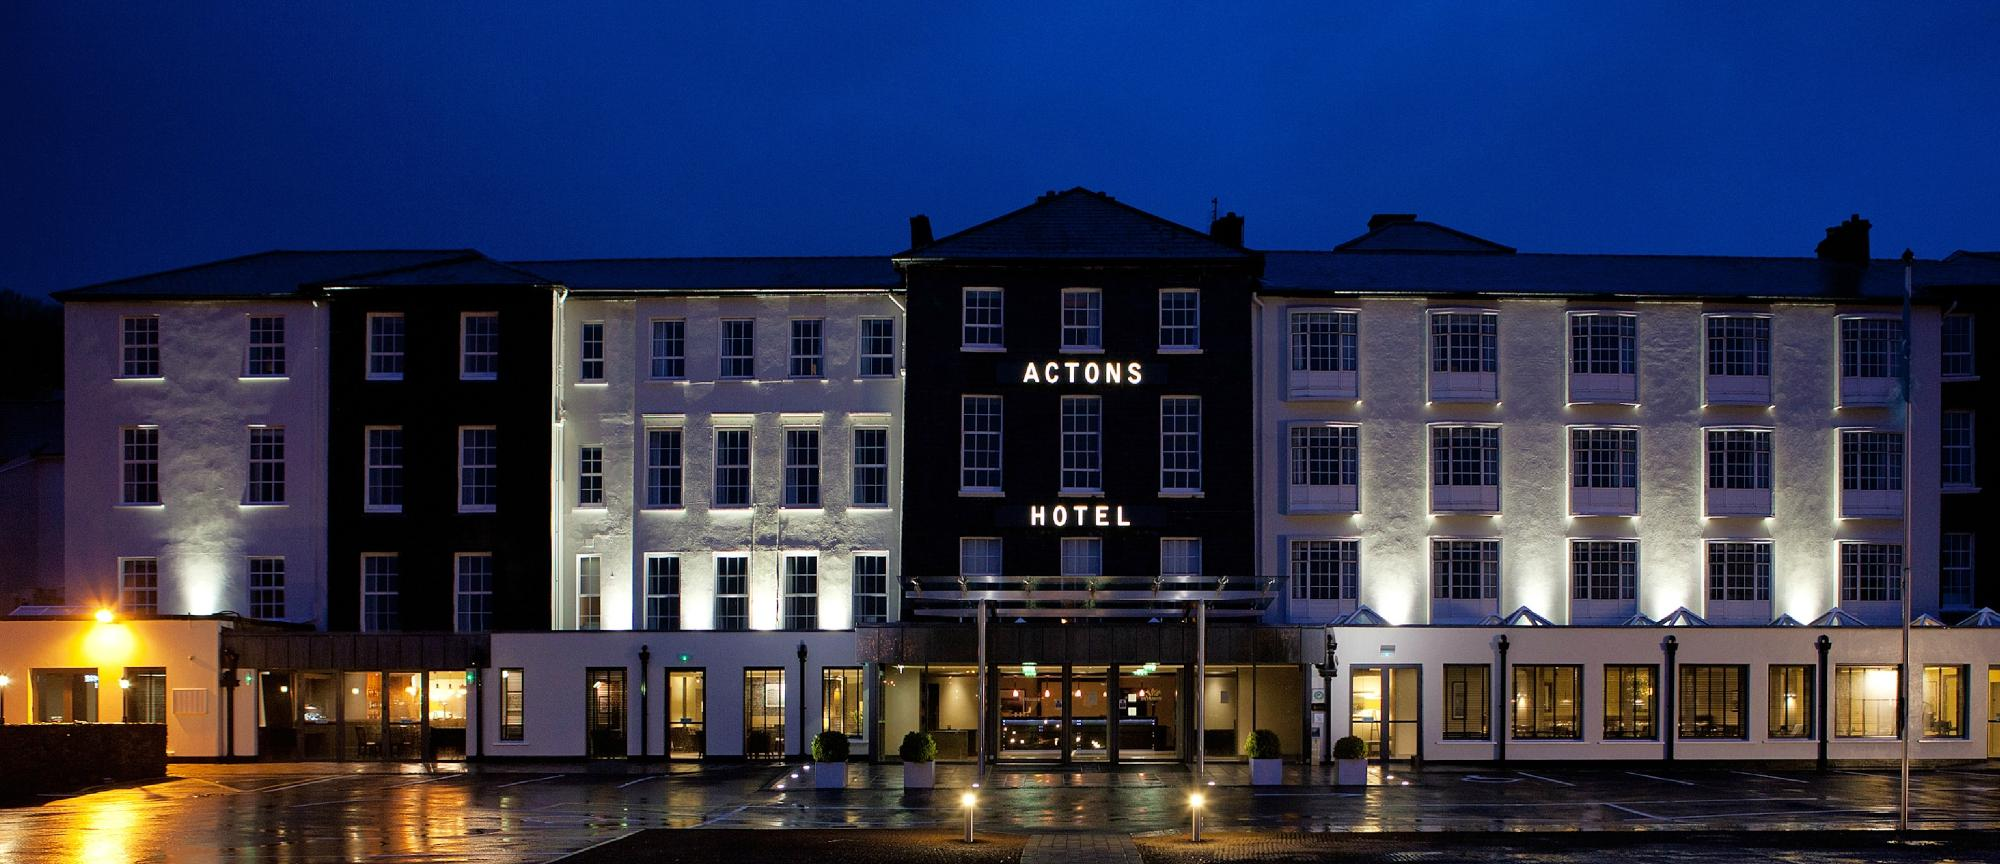 Actons Hotel